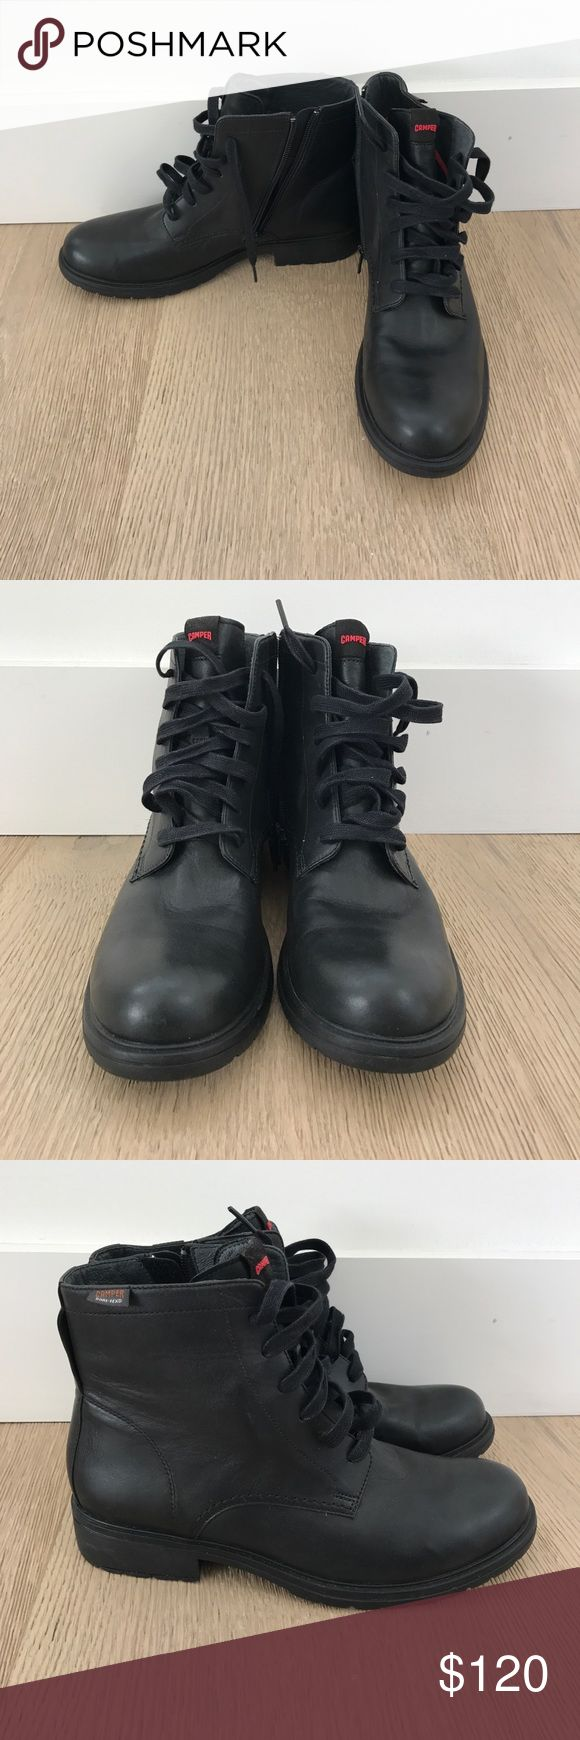 MOTHERS DAY SALE NWOT Camper Boots Gore Tex Camper boots, never worn, in perfect condition! Both hardy and fashionable, these boots are perfect whether you NEED boots or need () boots Camper Shoes Ankle Boots & Booties